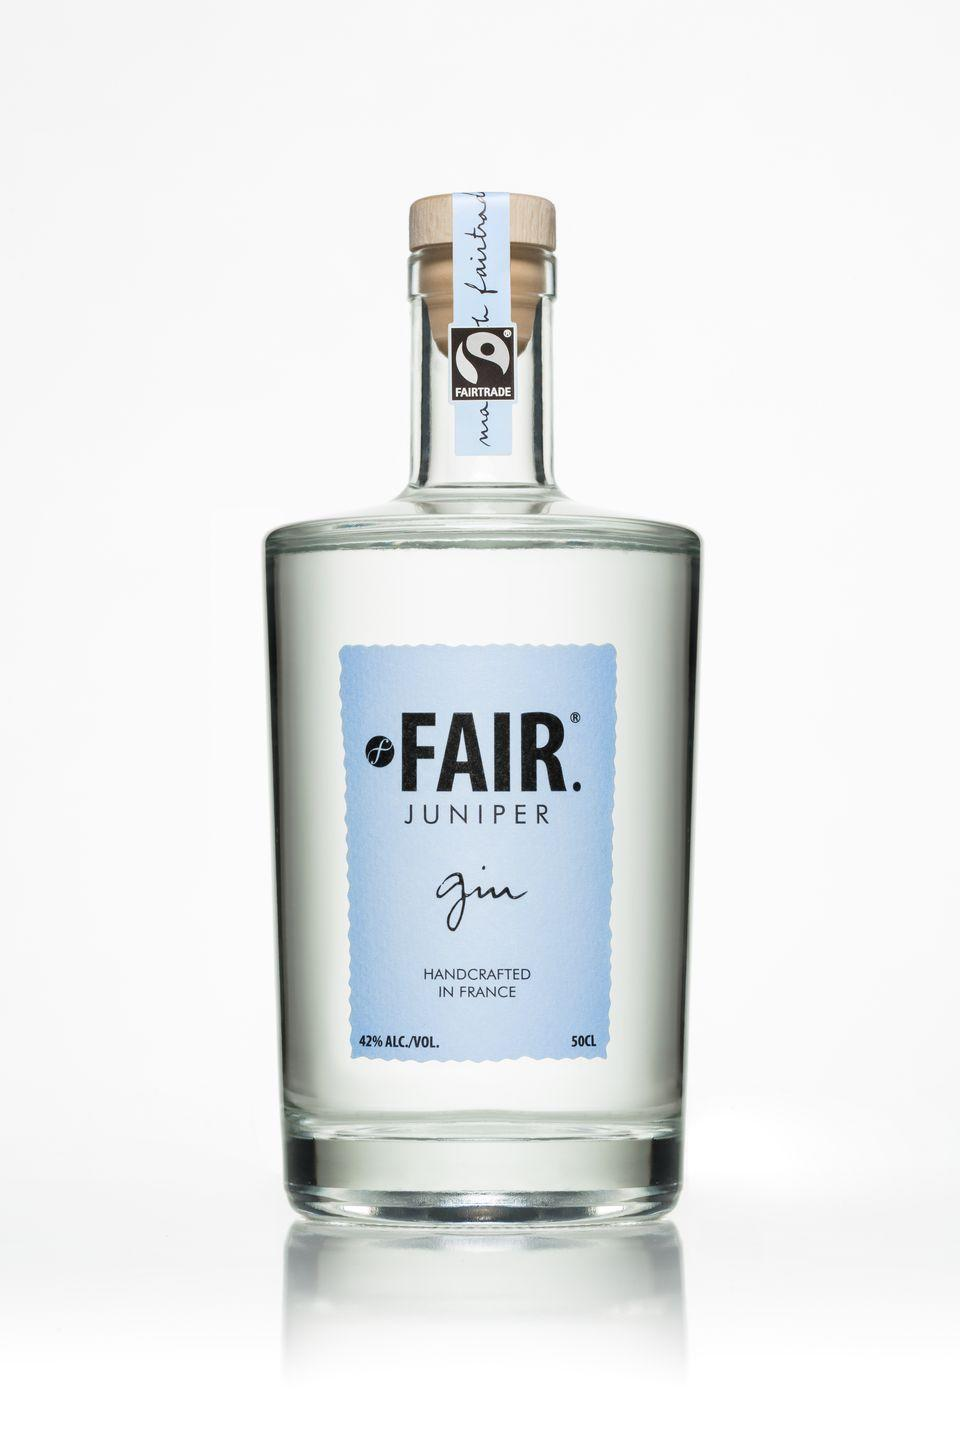 """<p>This fair-trade company in France makes a point of championing producers and farmers to ensure its spirits are delicious, while also kind to the people who make them. <a href=""""http://www.fair-drinks.com/spi..."""" rel=""""nofollow noopener"""" target=""""_blank"""" data-ylk=""""slk:Fair gin"""" class=""""link rapid-noclick-resp"""">Fair gin</a> has the scent of perfume when the bottle is first opened. On tasting, its floral tones dominate, instantly transporting you to a French summer's day. </p><p>Pair it with <a href=""""https://www.londonessenceco.com/en/"""" rel=""""nofollow noopener"""" target=""""_blank"""" data-ylk=""""slk:the London Essence Original Indian tonic water"""" class=""""link rapid-noclick-resp"""">the London Essence Original Indian tonic water</a> for a classic G&T with a French twist. The London Essence Indian tonic doesn't shy away from quinine – in fact, it embraces it, bringing a satisfying bitter taste for an authentic gin mixer. </p>"""